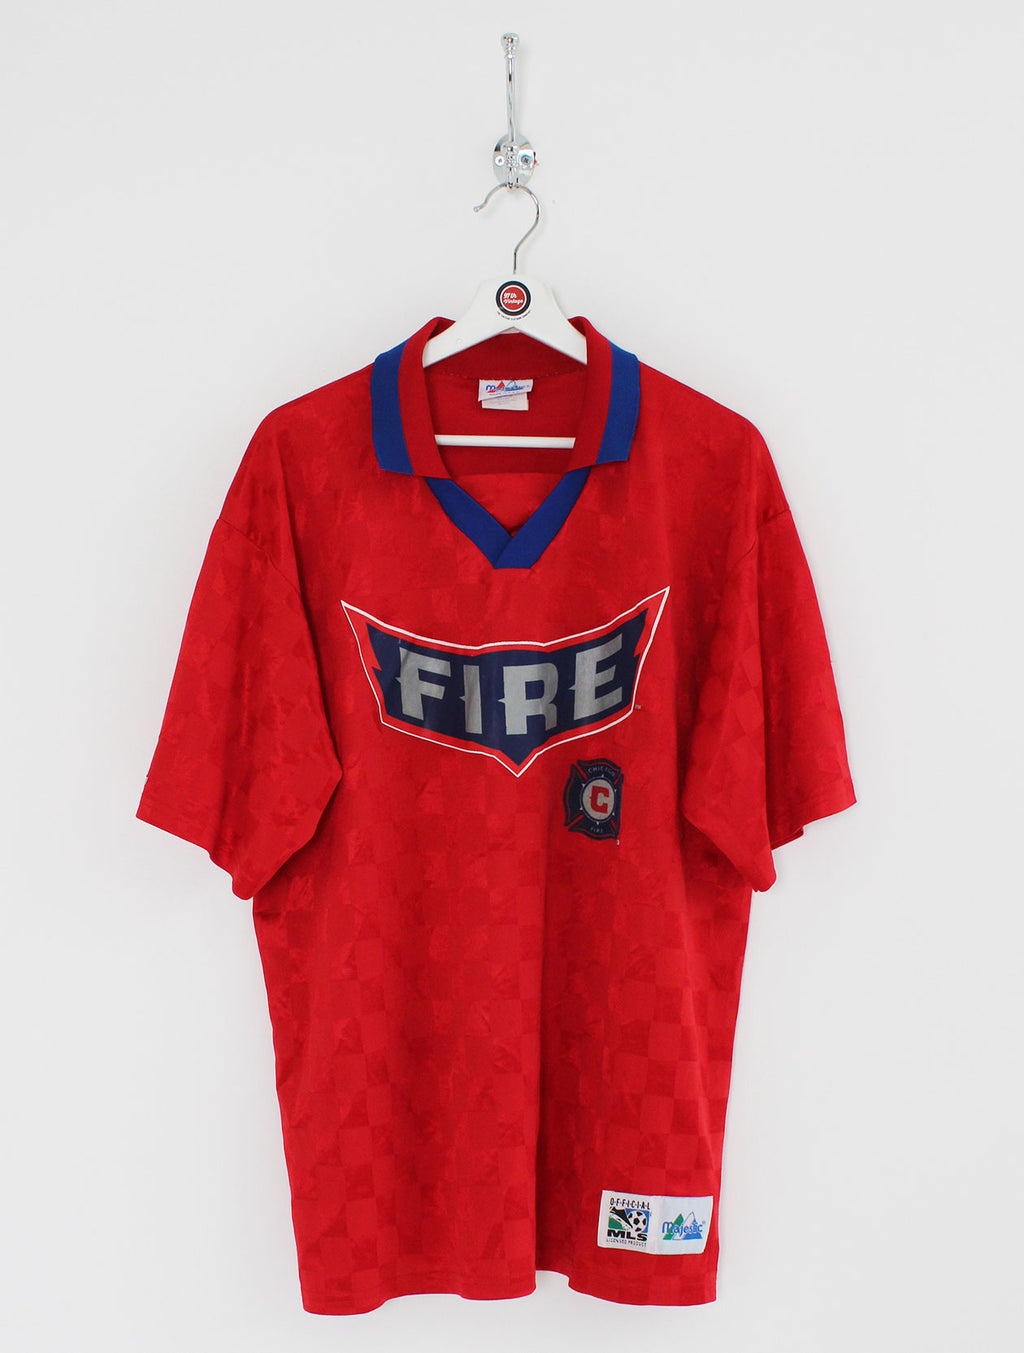 Chicago Fire Football Shirt (L)